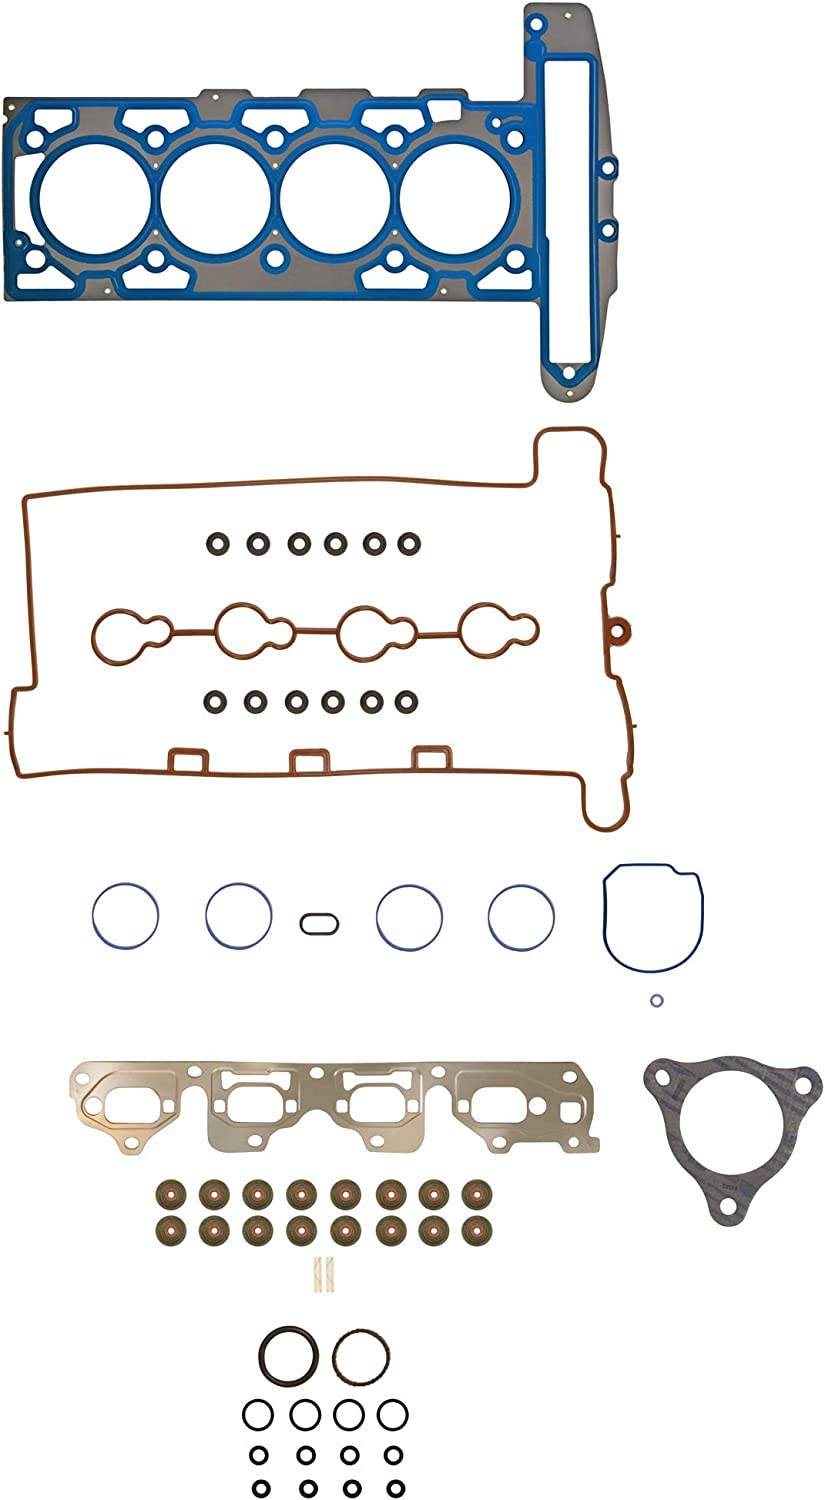 FEL-PRO HS 26223 We OFFer at cheap prices Oakland Mall PT-5 Gasket Set Head